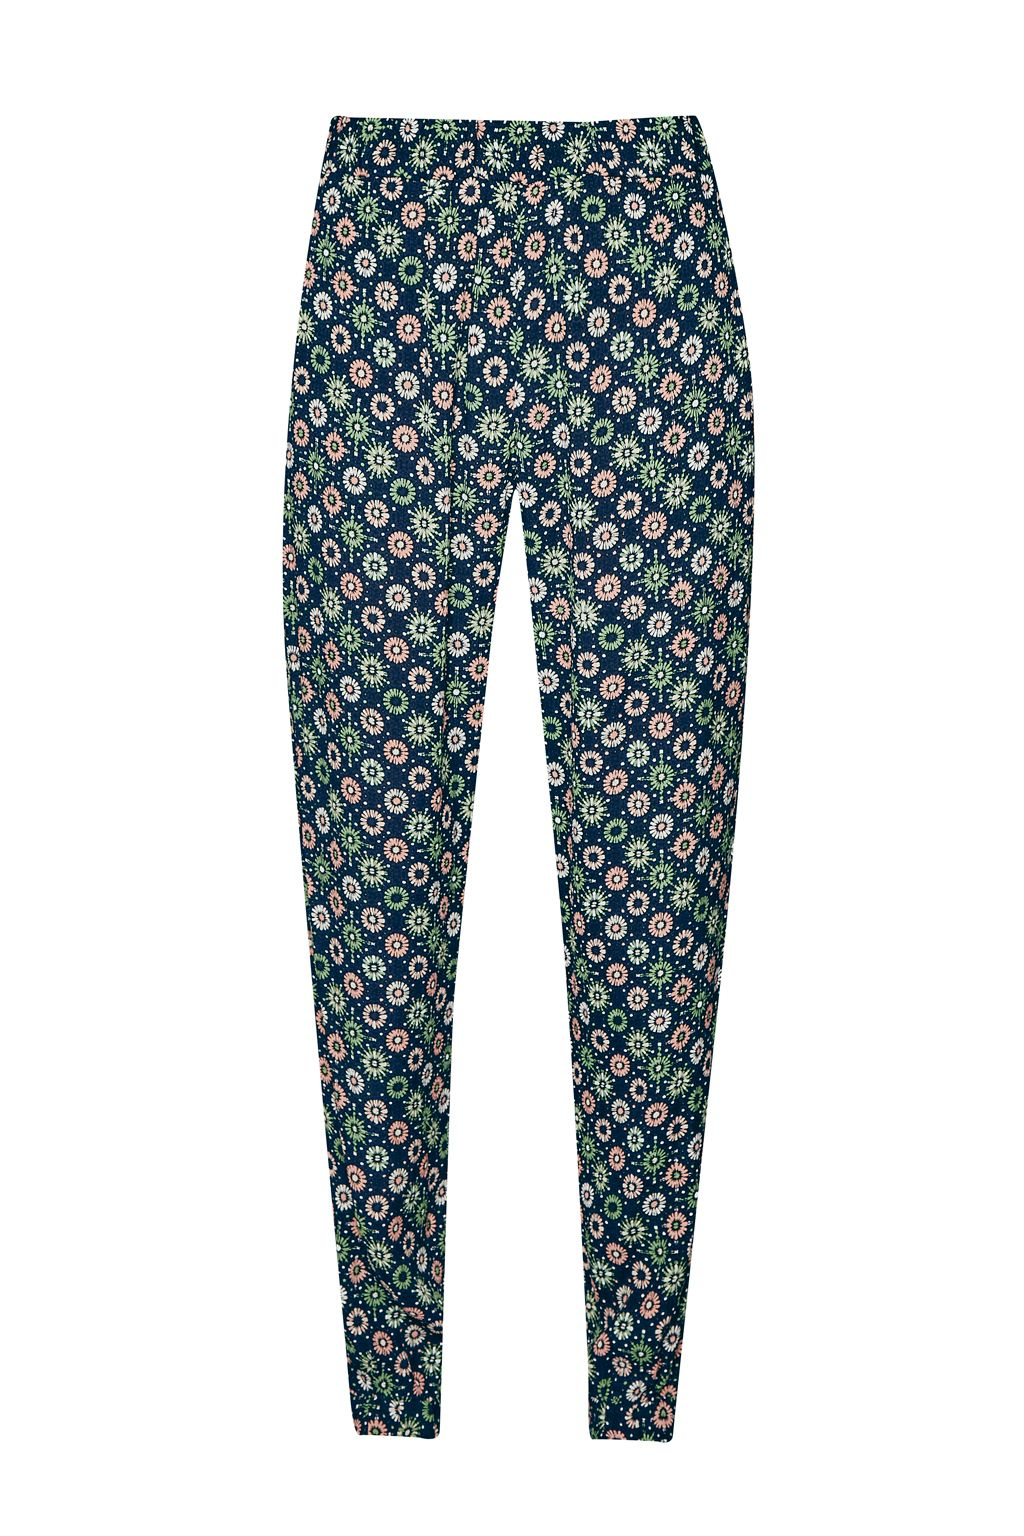 French Connection Medina Tile Printed Joggers, Green